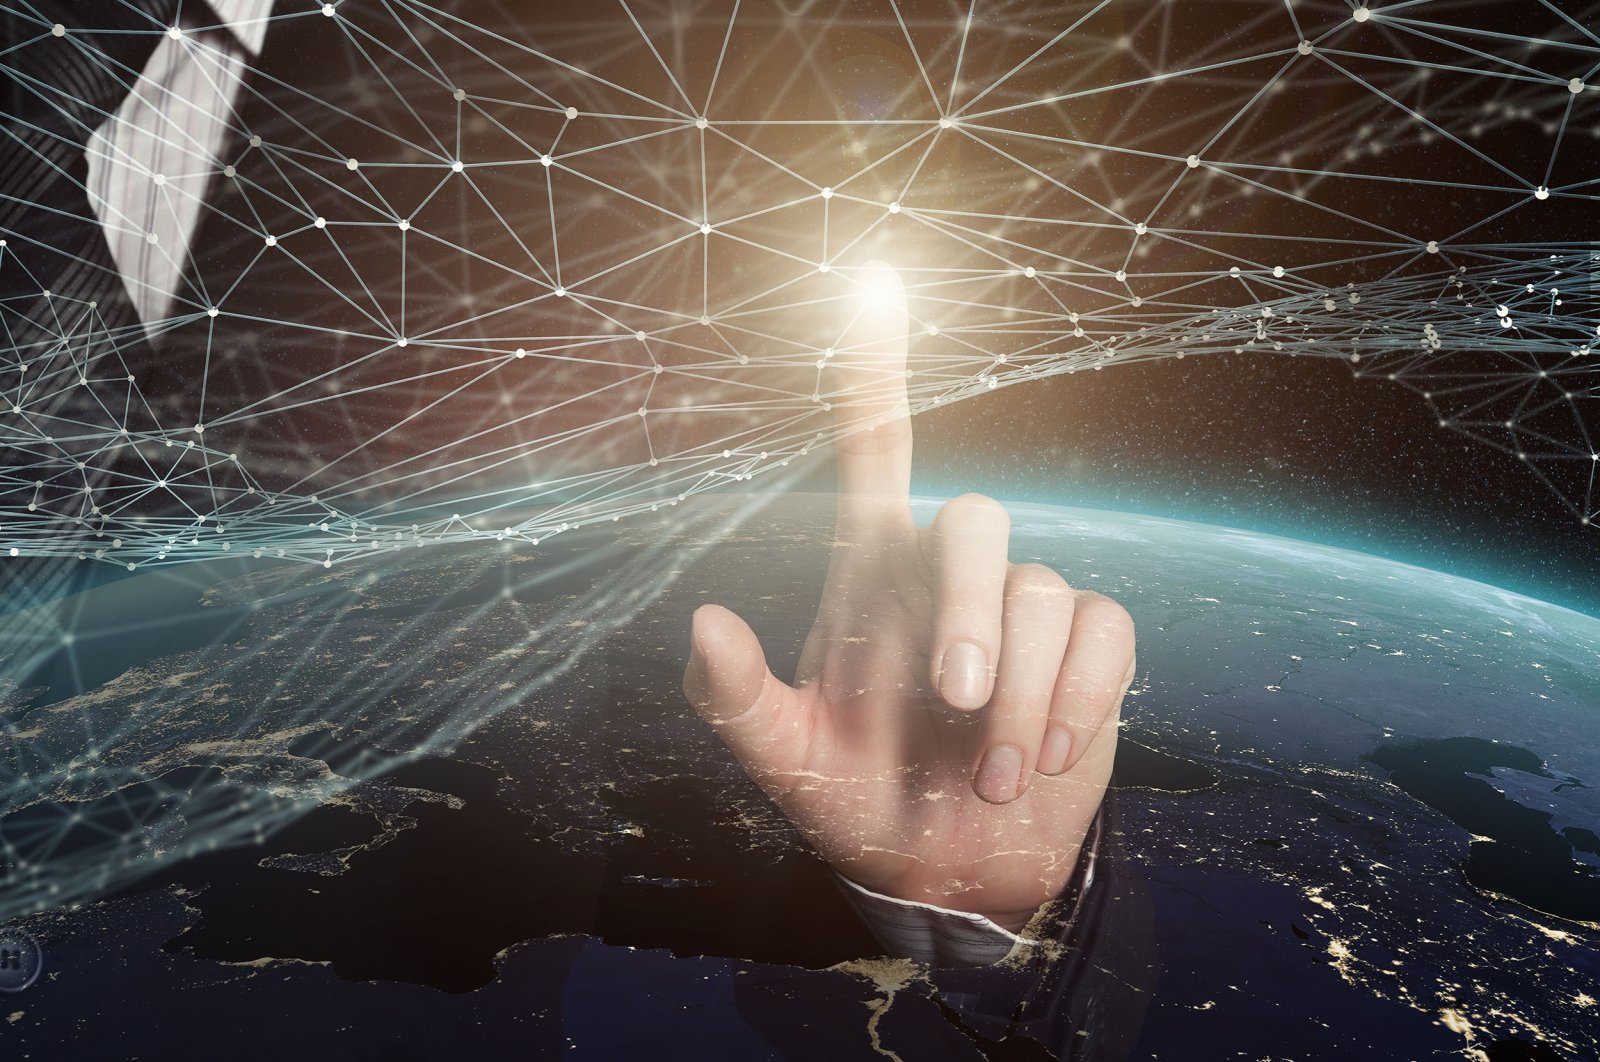 Computers, the internet, mobile phones, fiber cables and satellites weave together an ever-growing electronic, digital network where everything and everyone is interconnected today. (Shutterstock Photo)